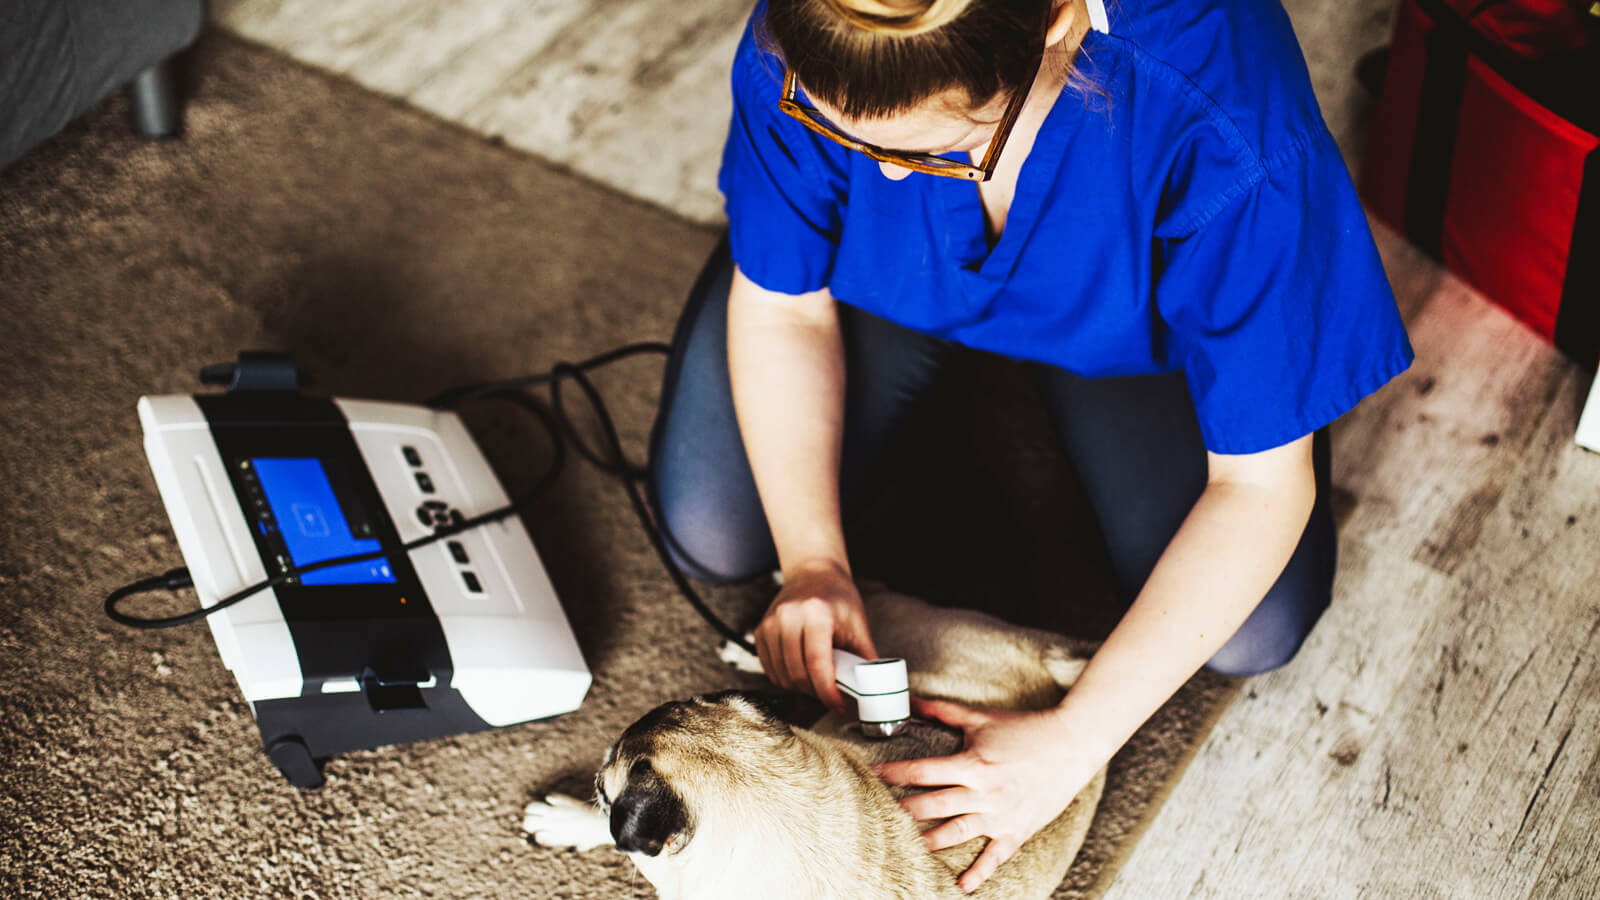 Agata uses laser therapy in the physical rehabilitation process.